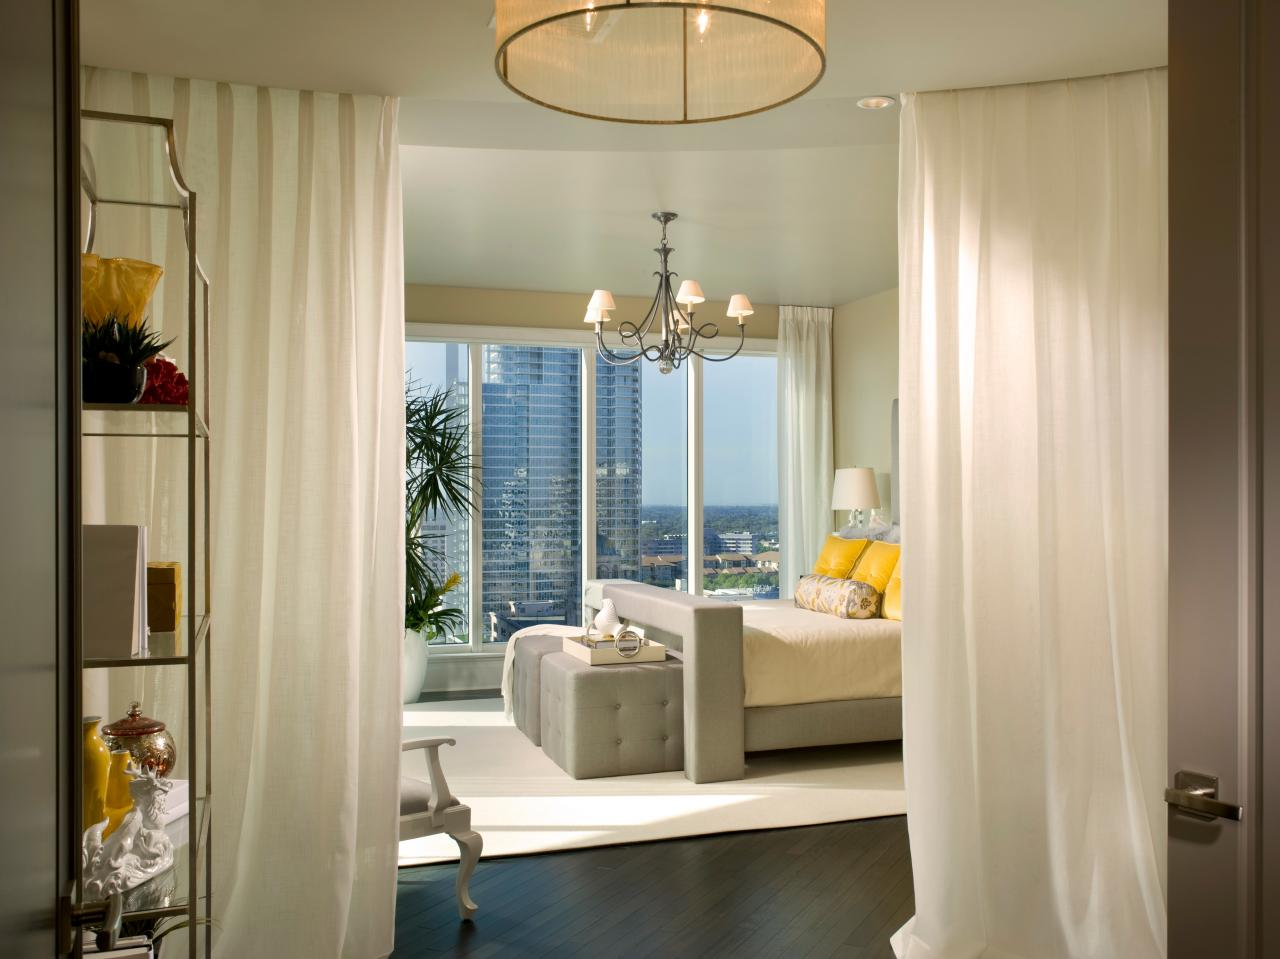 Modern Bedroom Design With Window Treatment Ideas Good Ideas